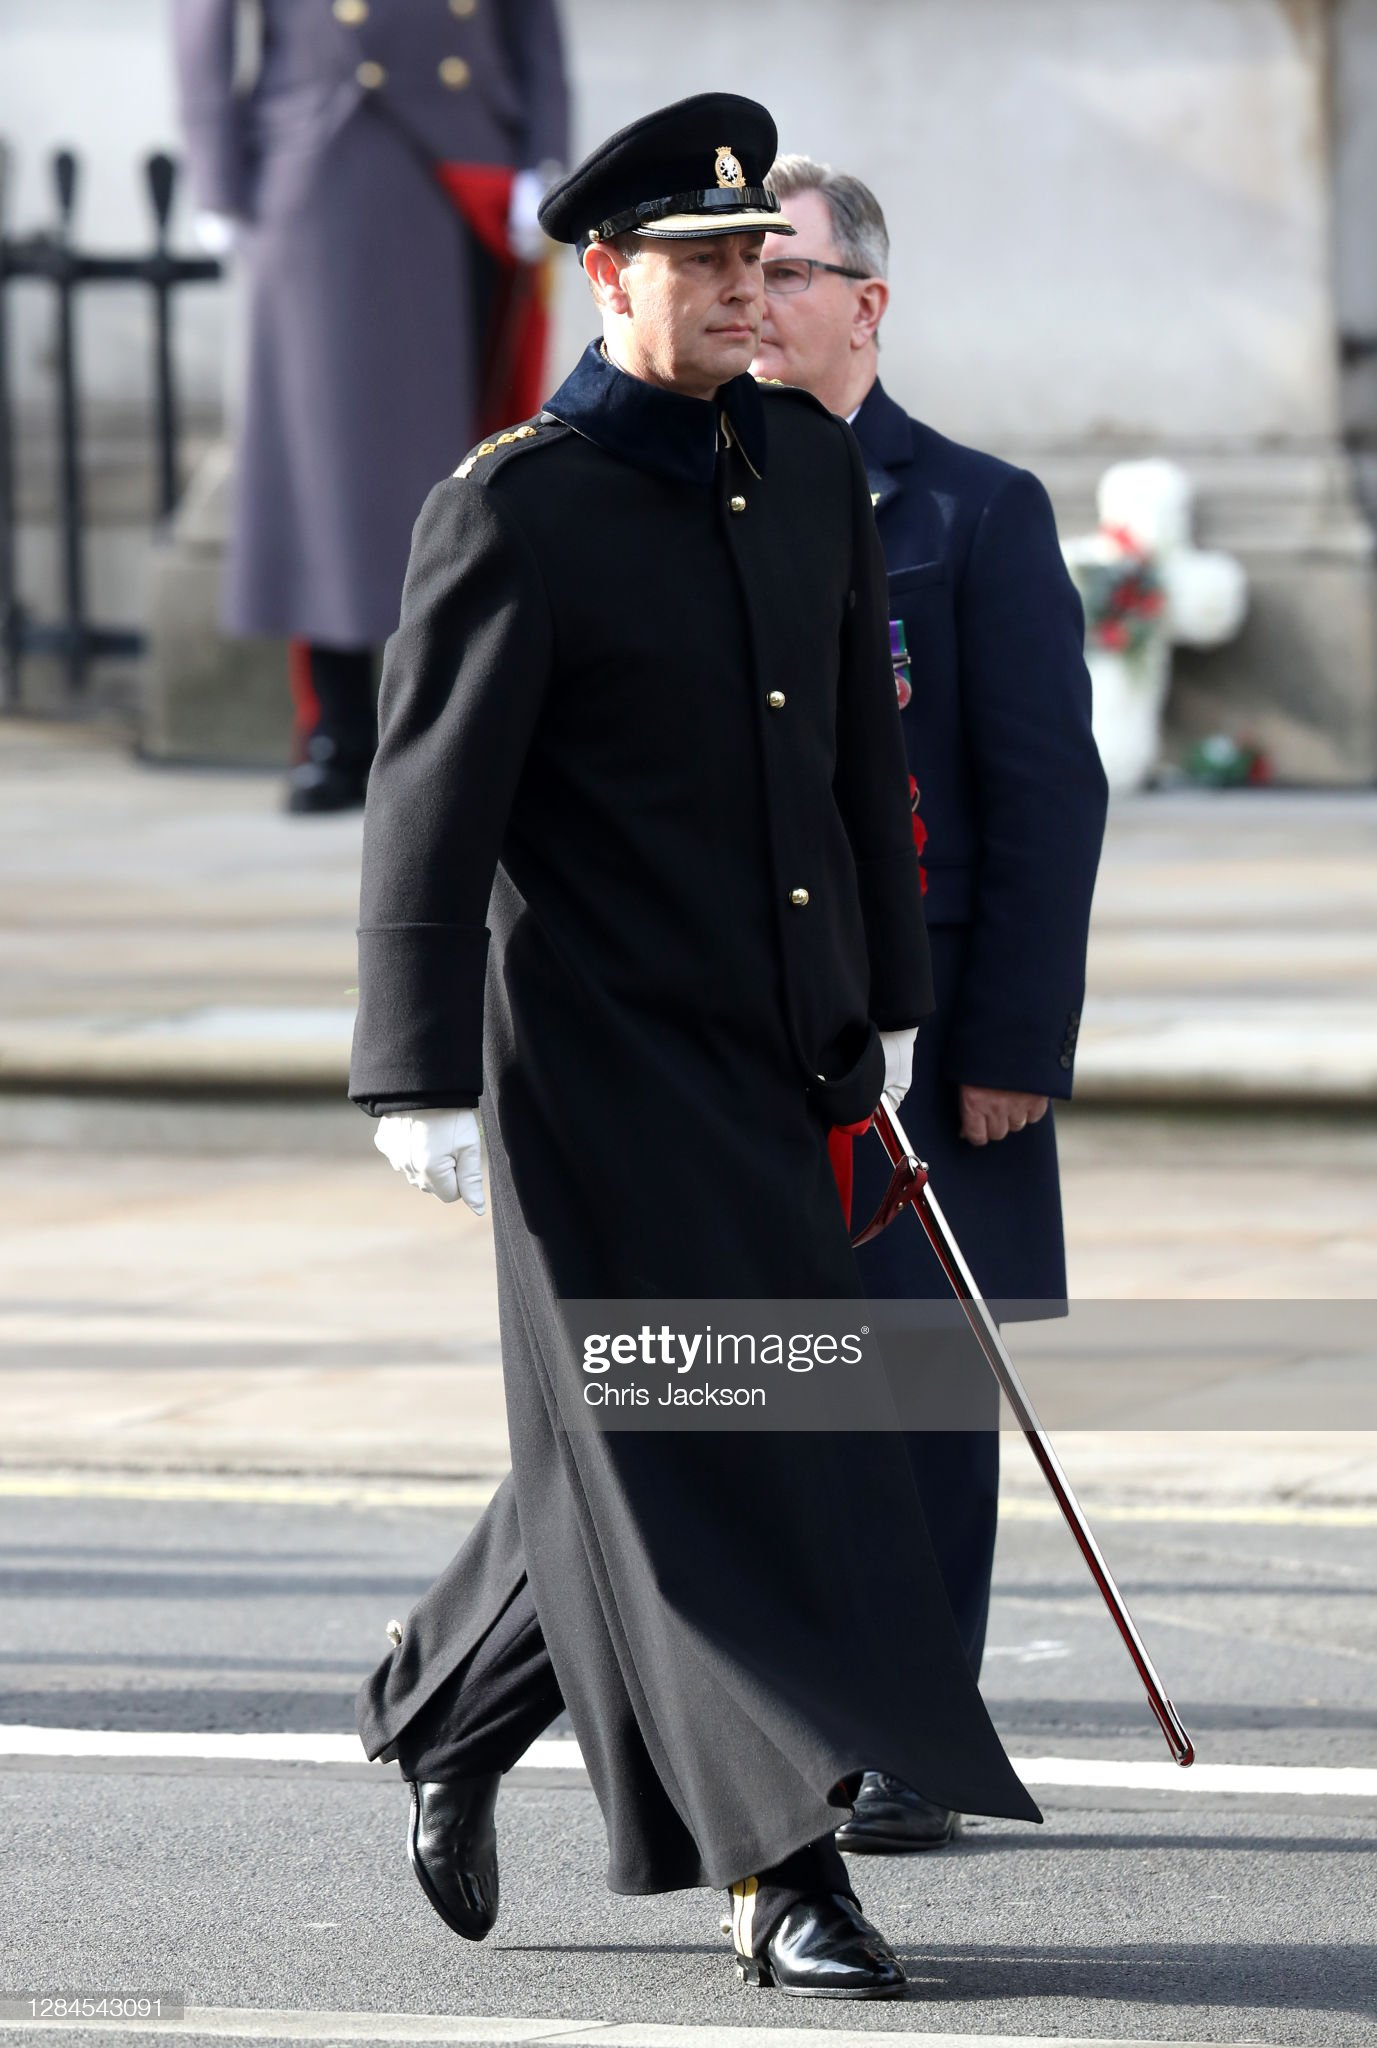 https://media.gettyimages.com/photos/prince-edward-earl-of-wessex-during-the-national-service-of-at-the-picture-id1284543091?s=2048x2048